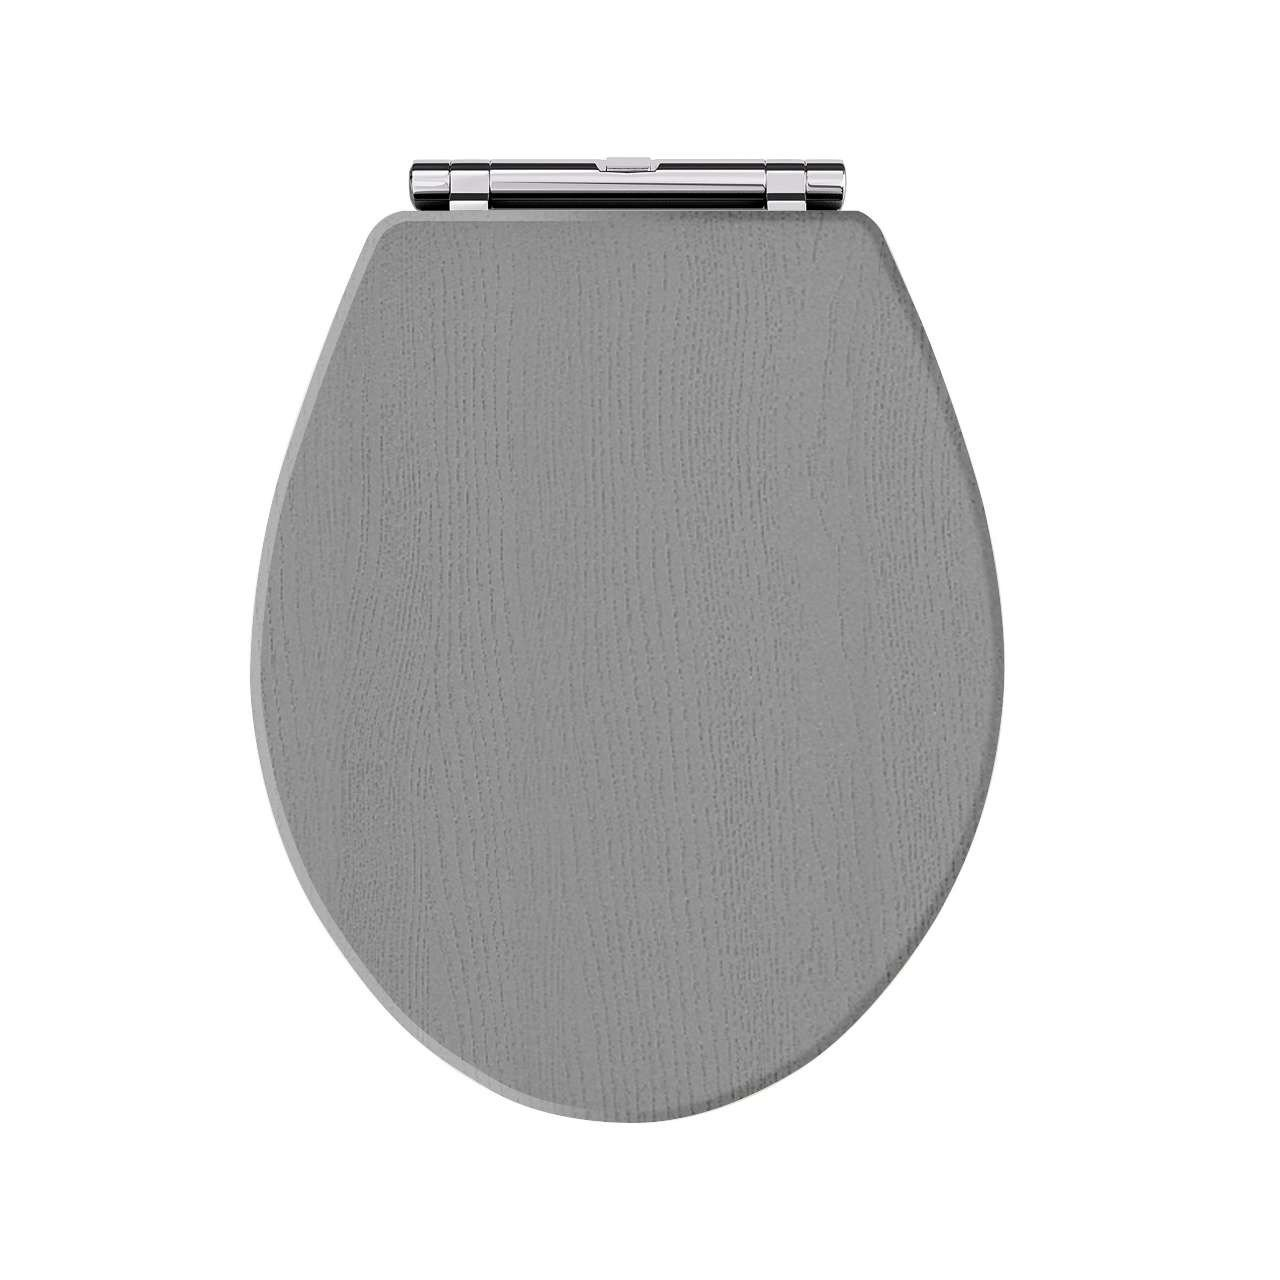 Old London Rhyther Storm Grey Traditional Toilet Seat - LOS299